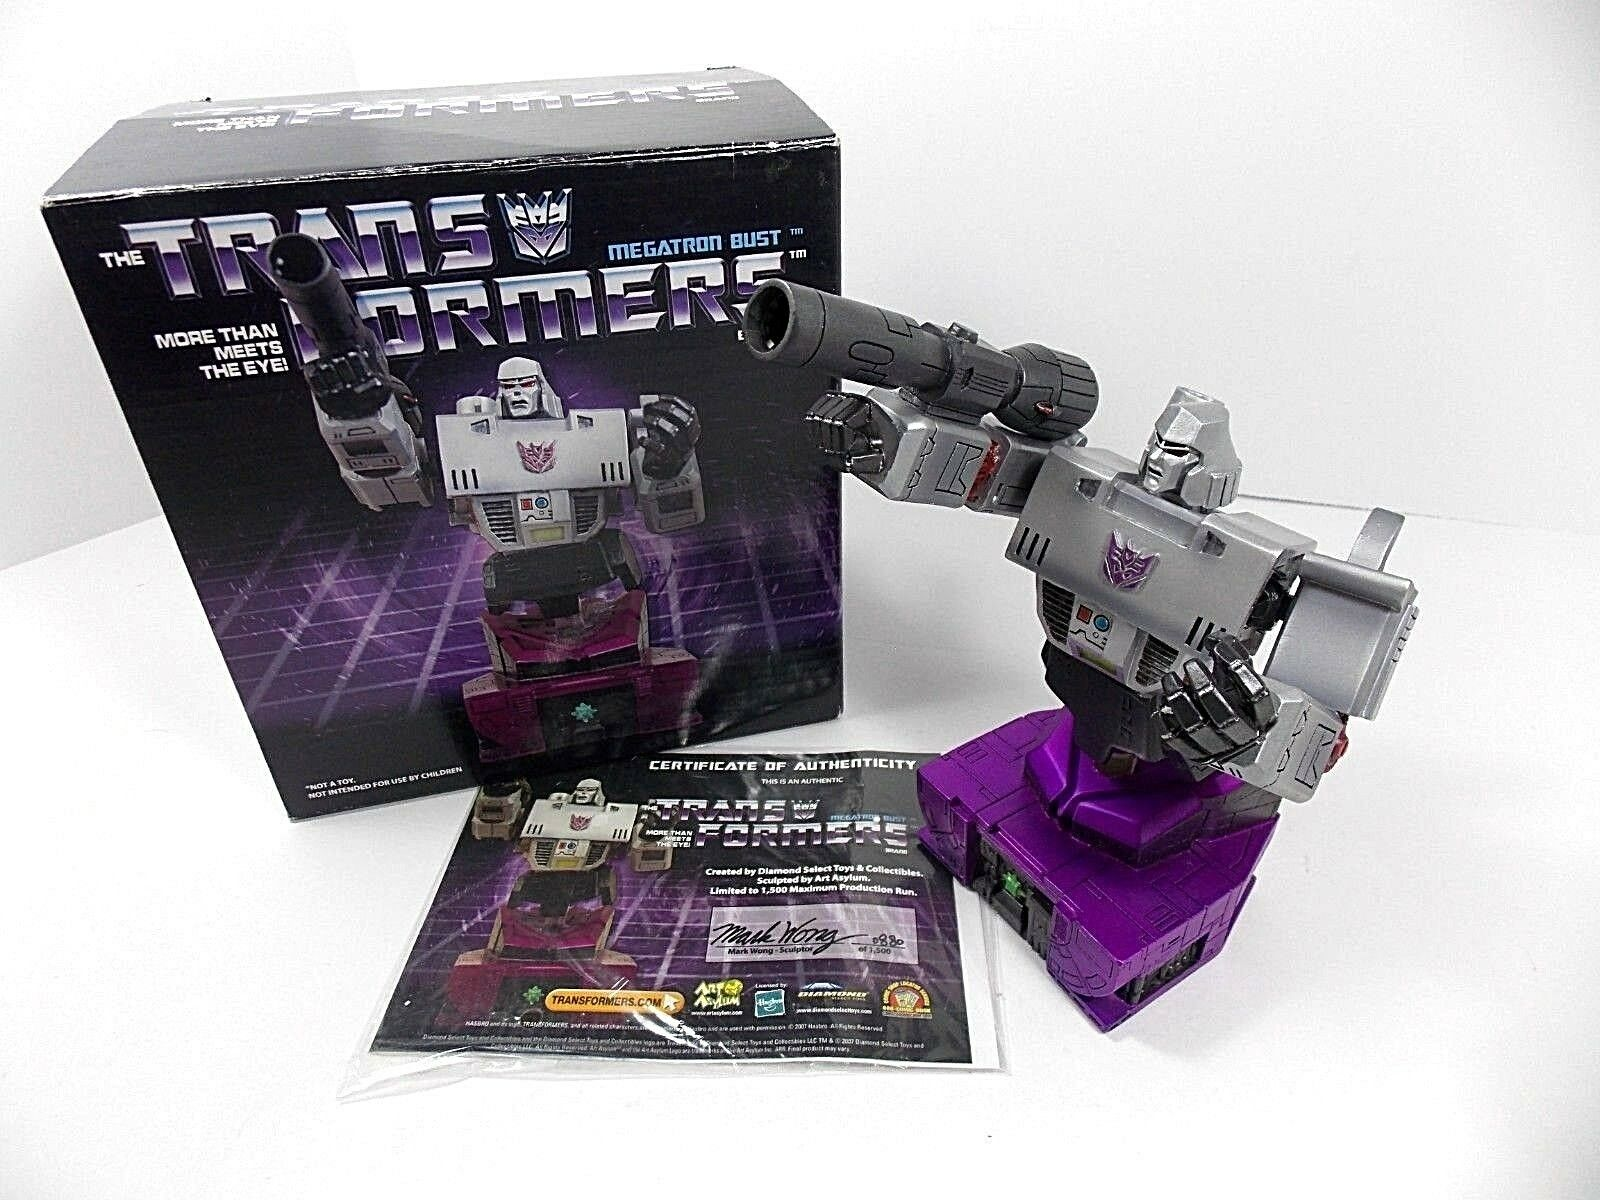 TRANSFORMERS MEGATRON BUST DIAMOND SELECT LIMITED 880 1500 STATUE W BOX AS IS